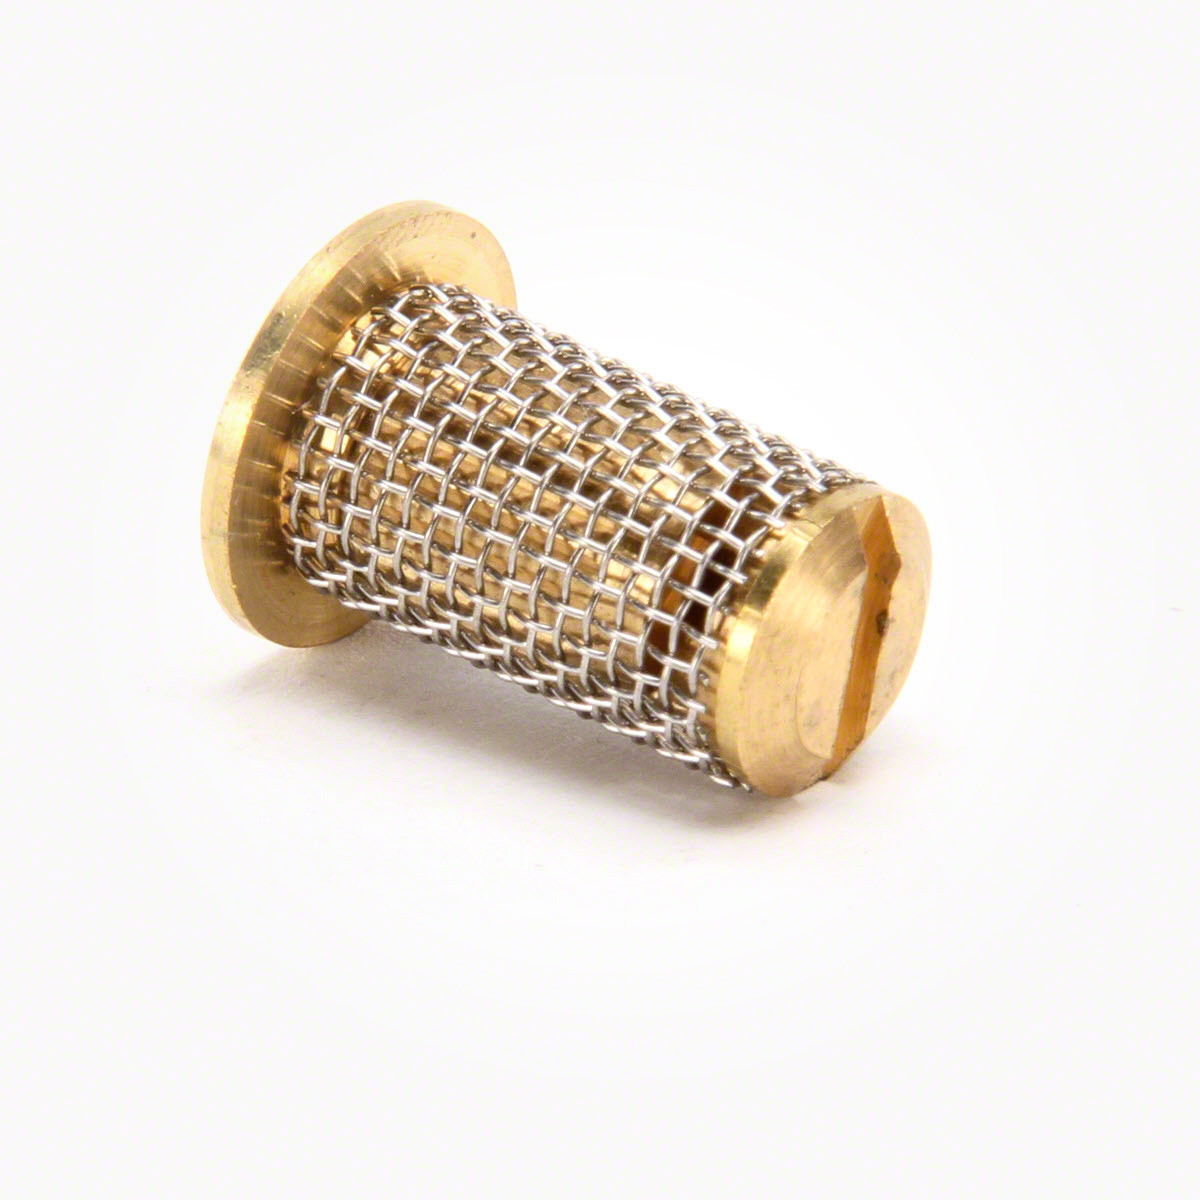 Buy teejet strainer check valve brass spraysmarter